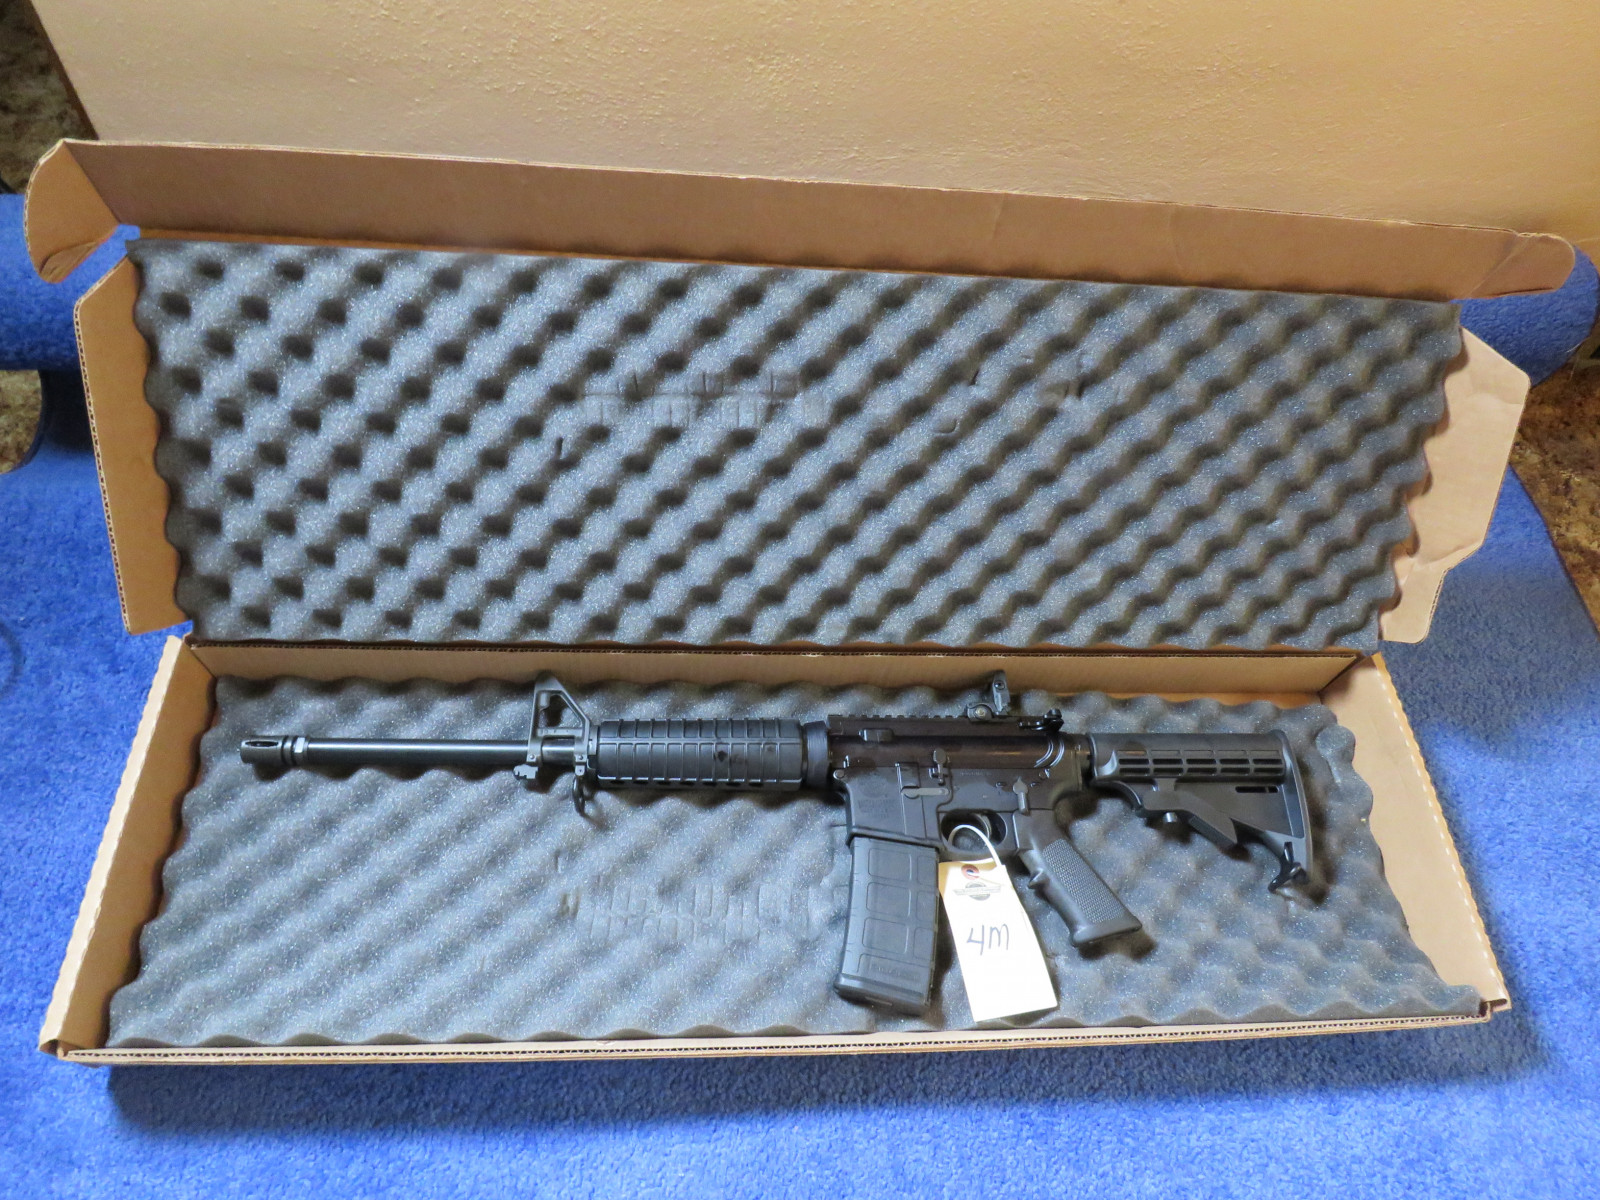 Smith & Wesson M&P15 Centerfire Rifle NIB NF - Image 2